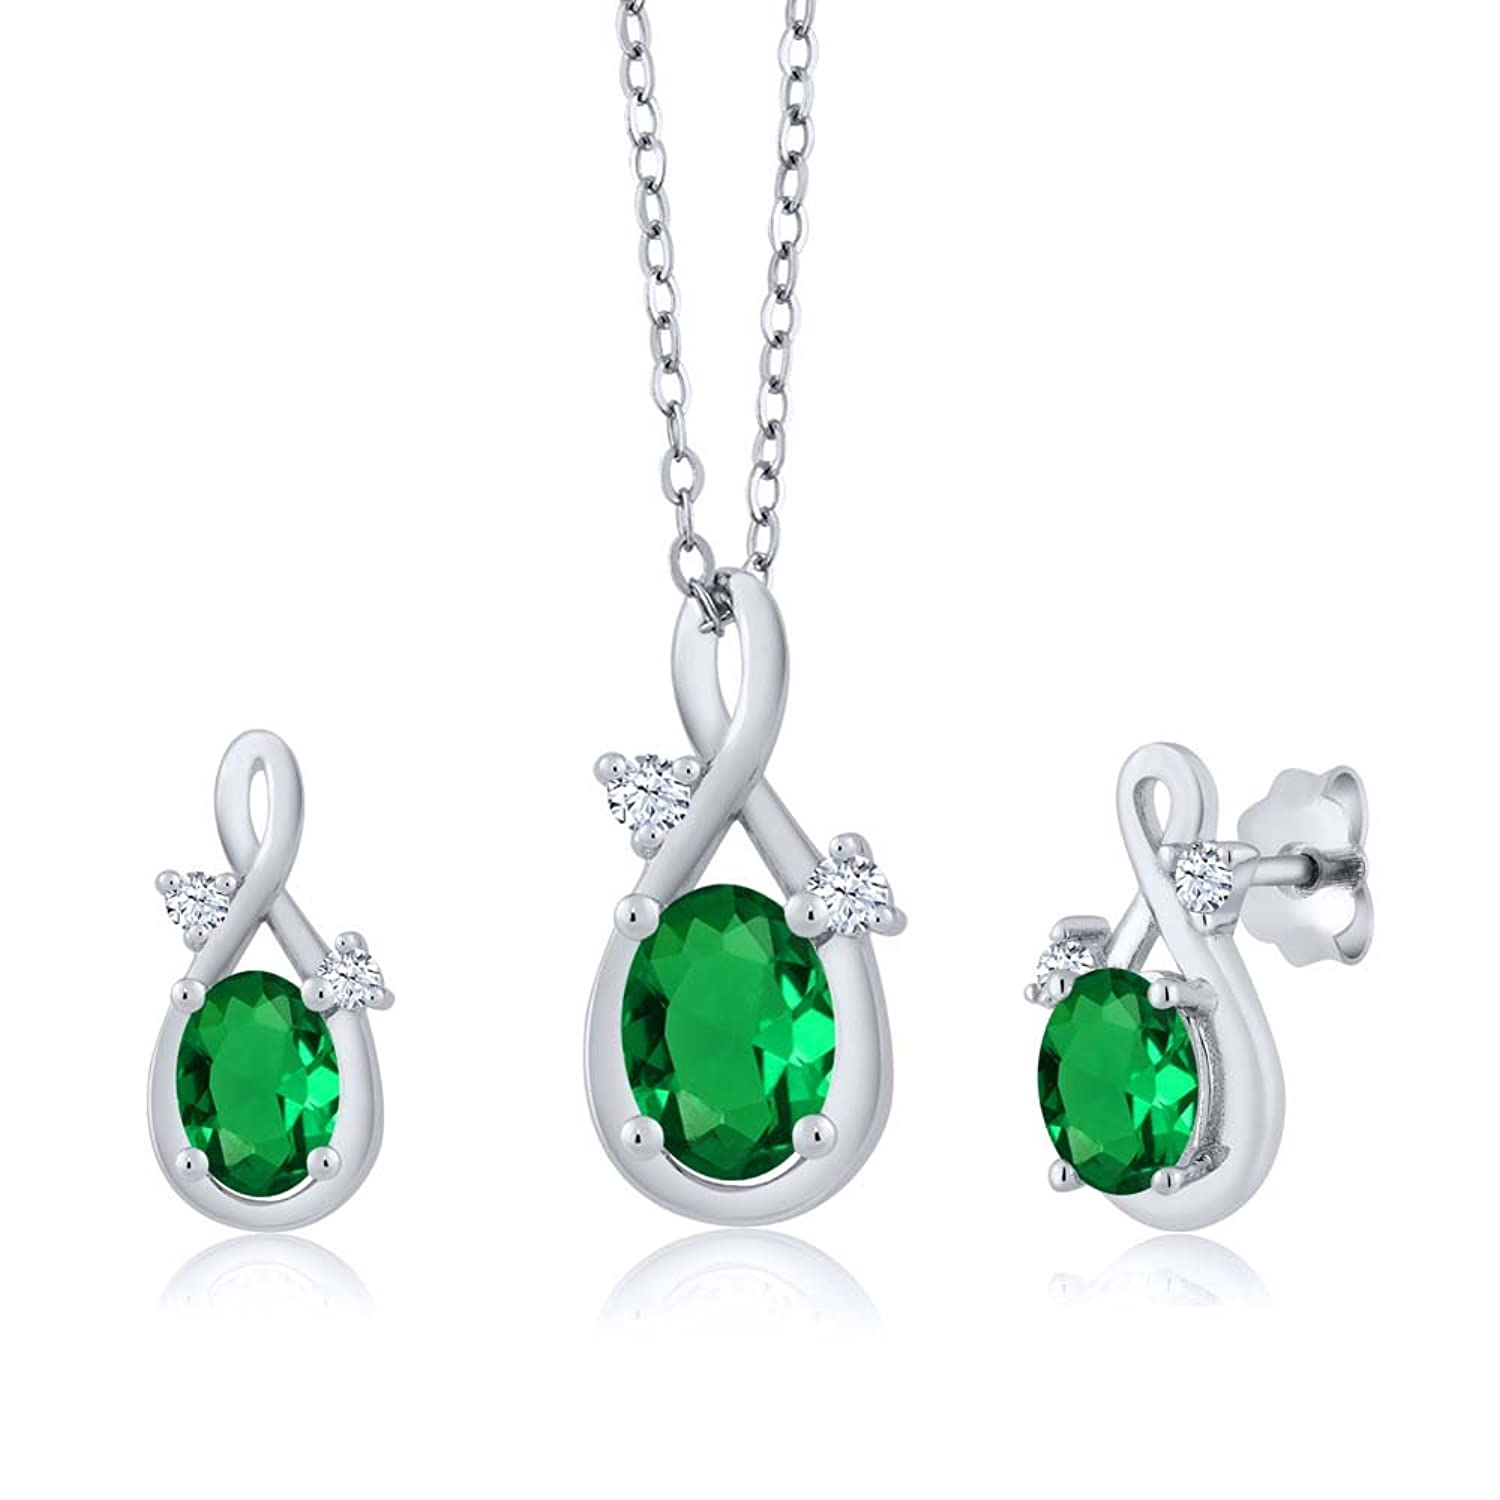 1.49 Ct Oval Green Simulated Emerald 14K White Gold Pendant Earrings Set